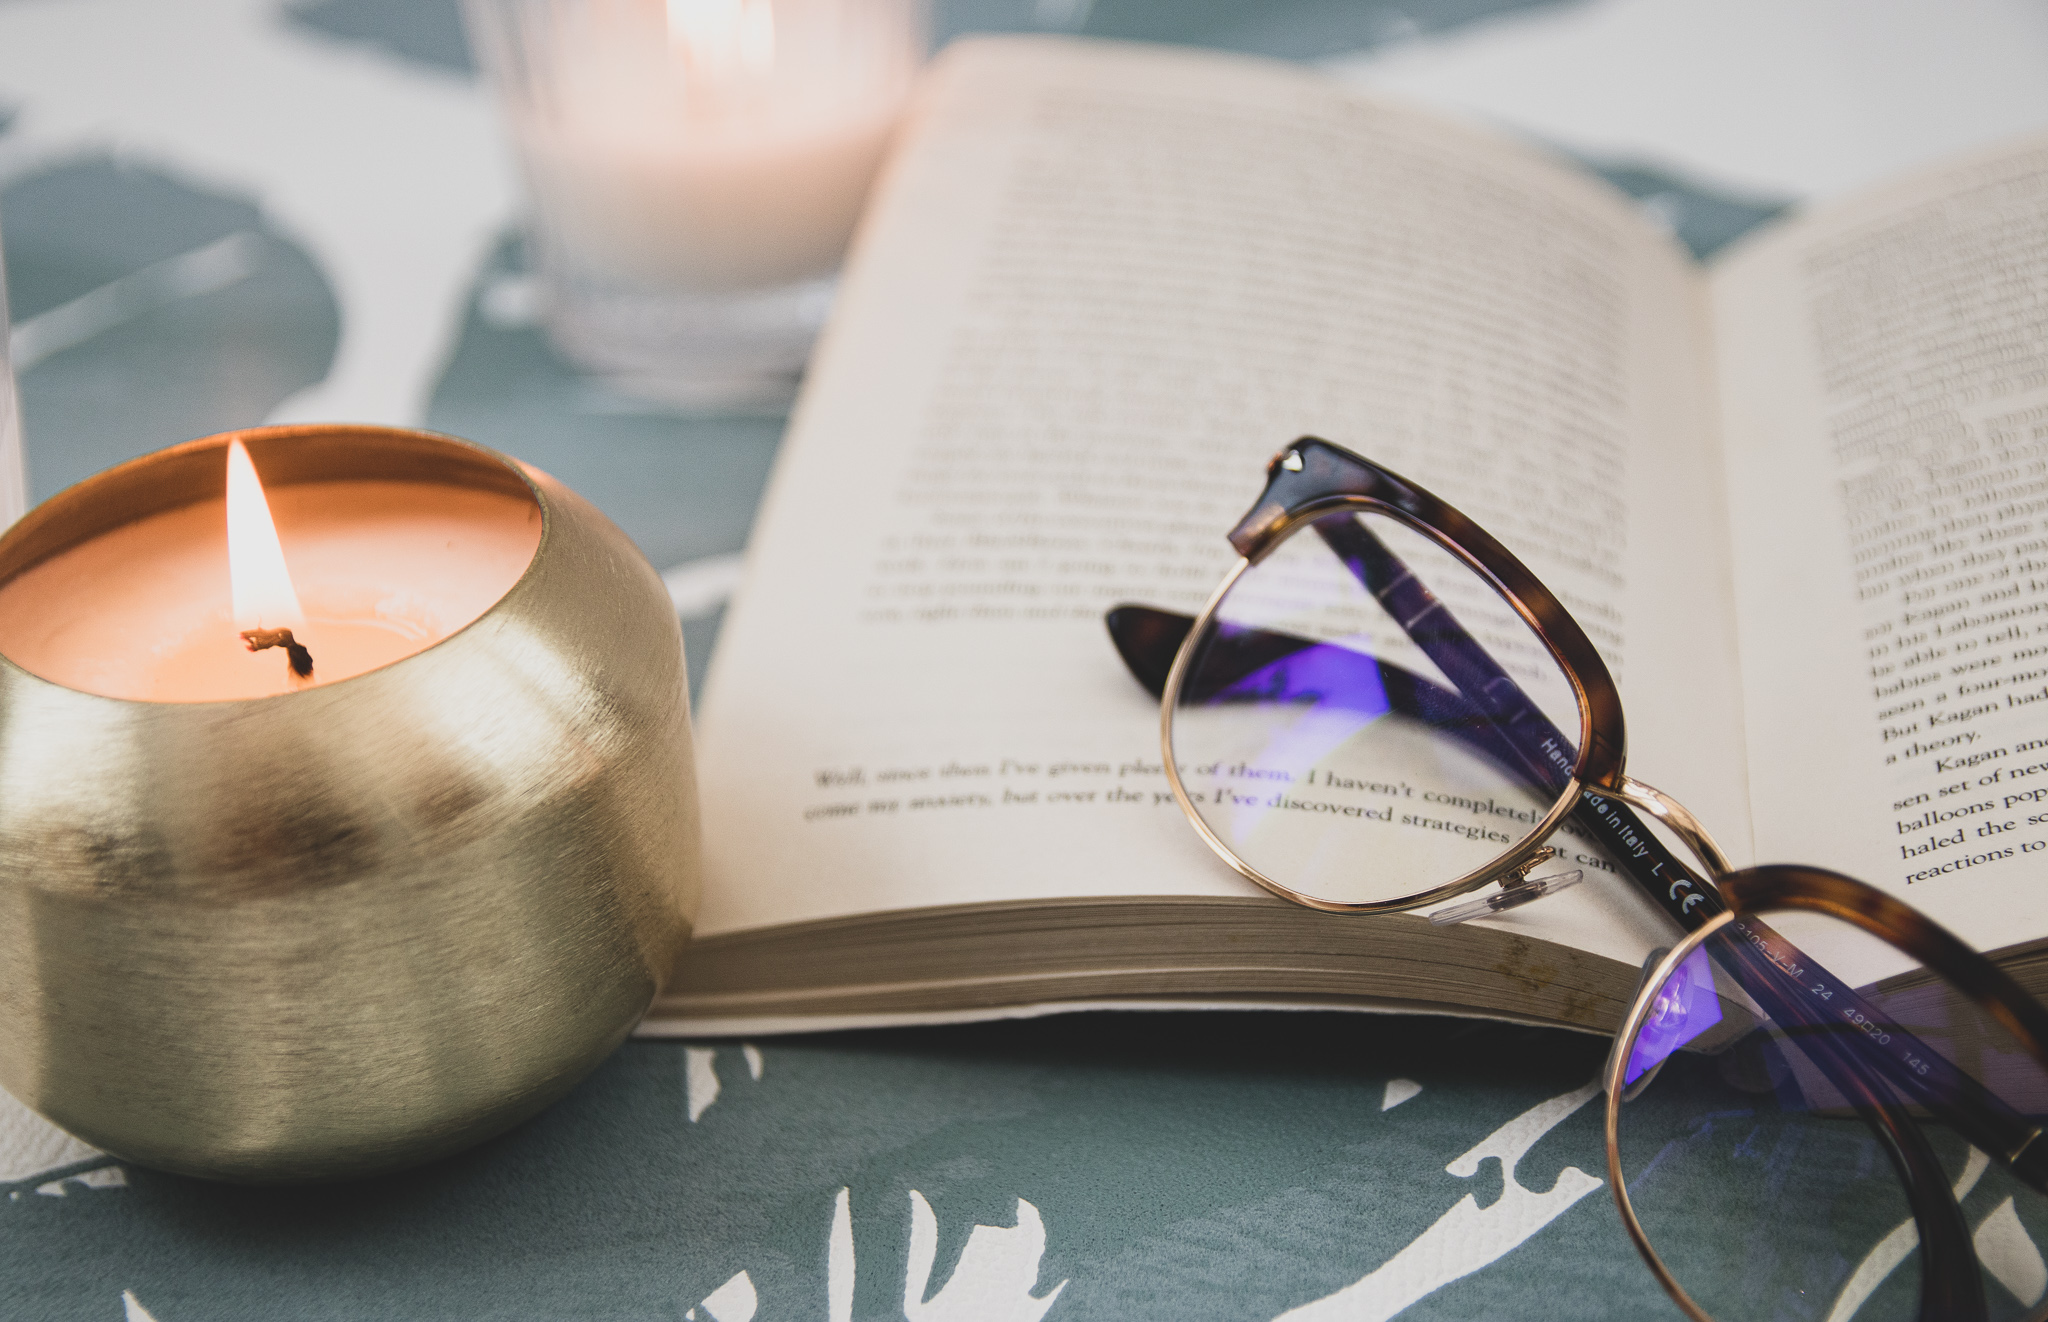 Glasses, candle and Notebook image.